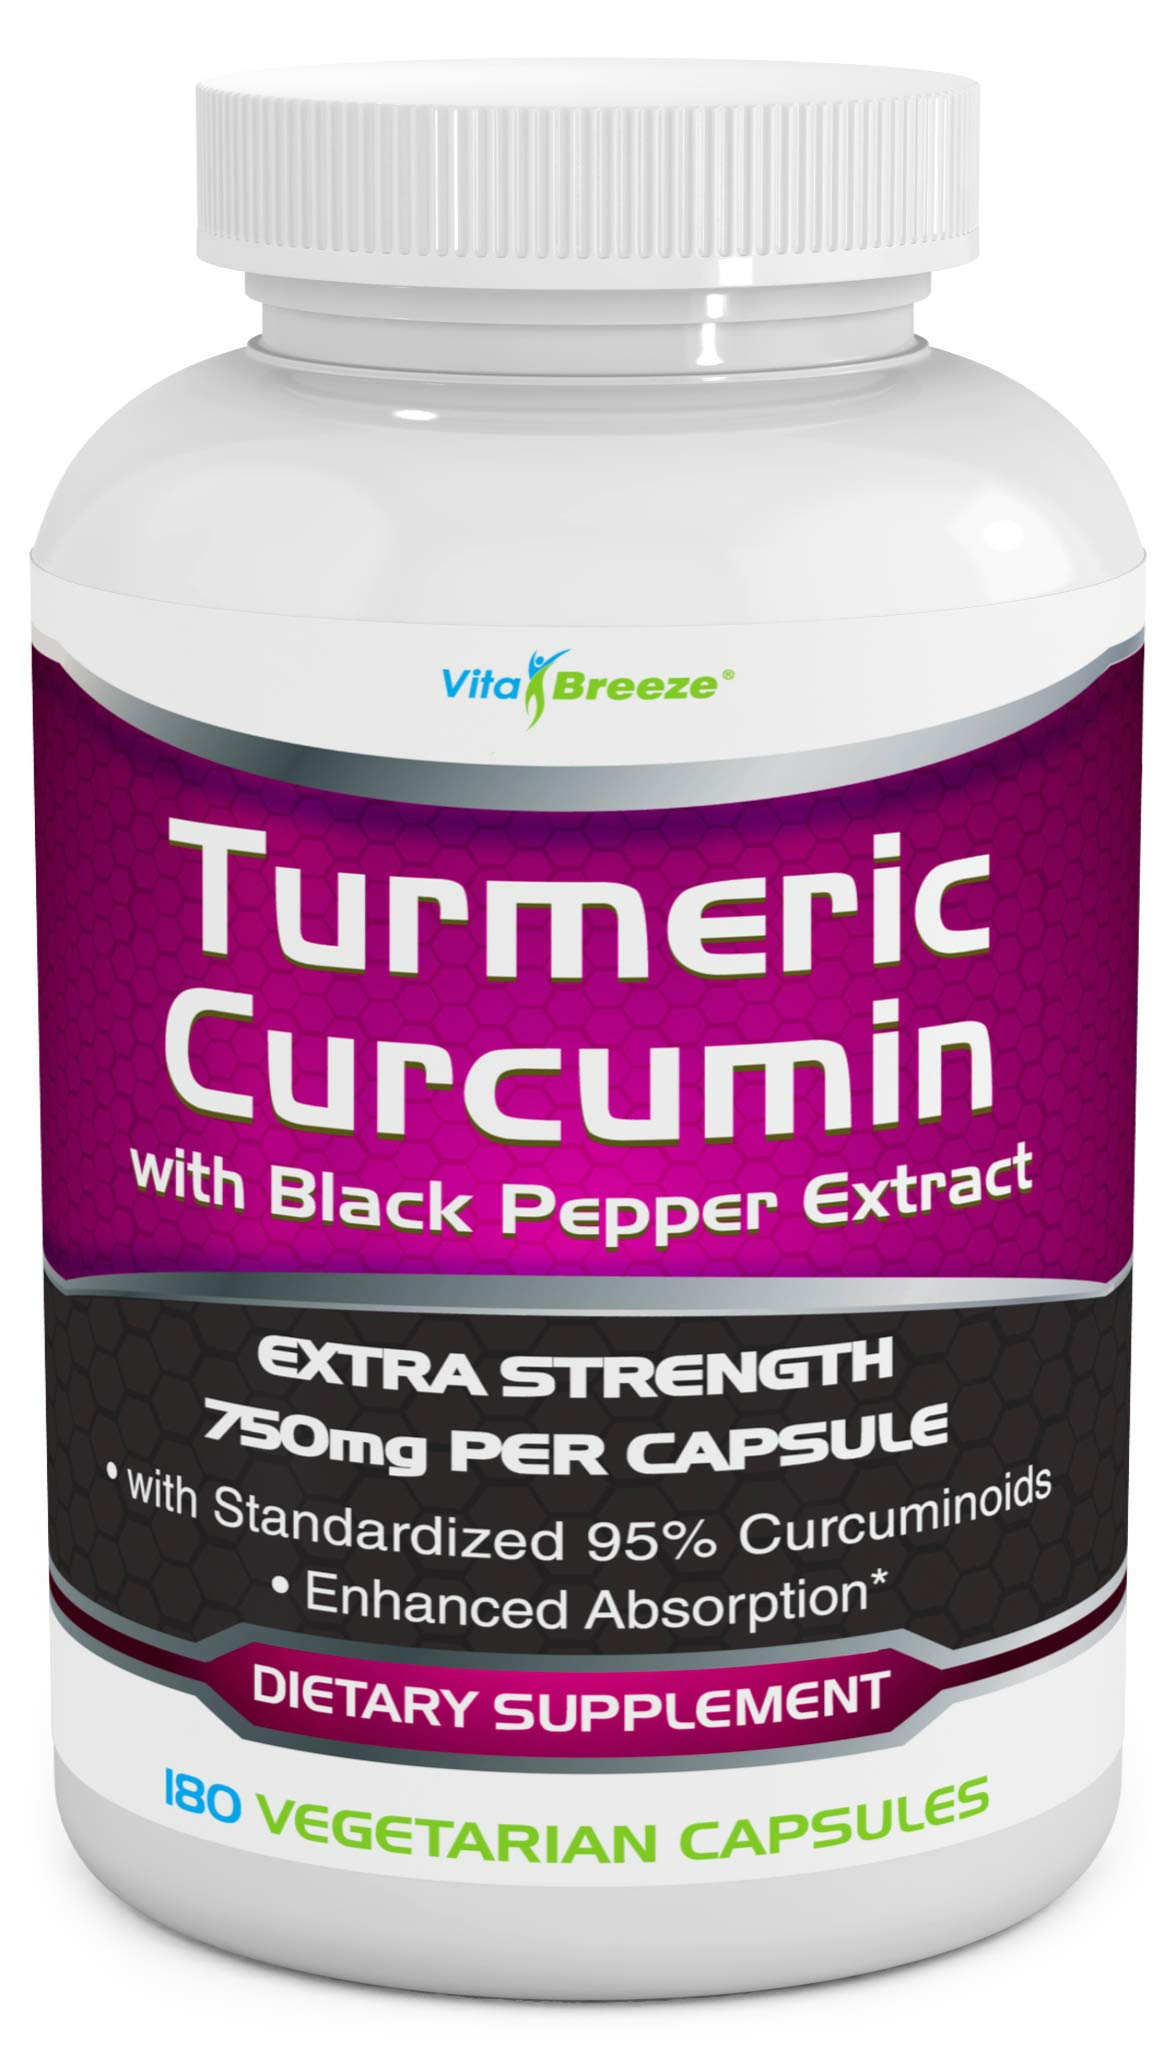 Turmeric Curcumin Complex with Black Pepper Extract - 750mg per Capsule, 180 Veg. Caps - Contains Piperine (for Superior Absorption and Tumeric Bio-Availability) and 95% Standardized Curcuminoids